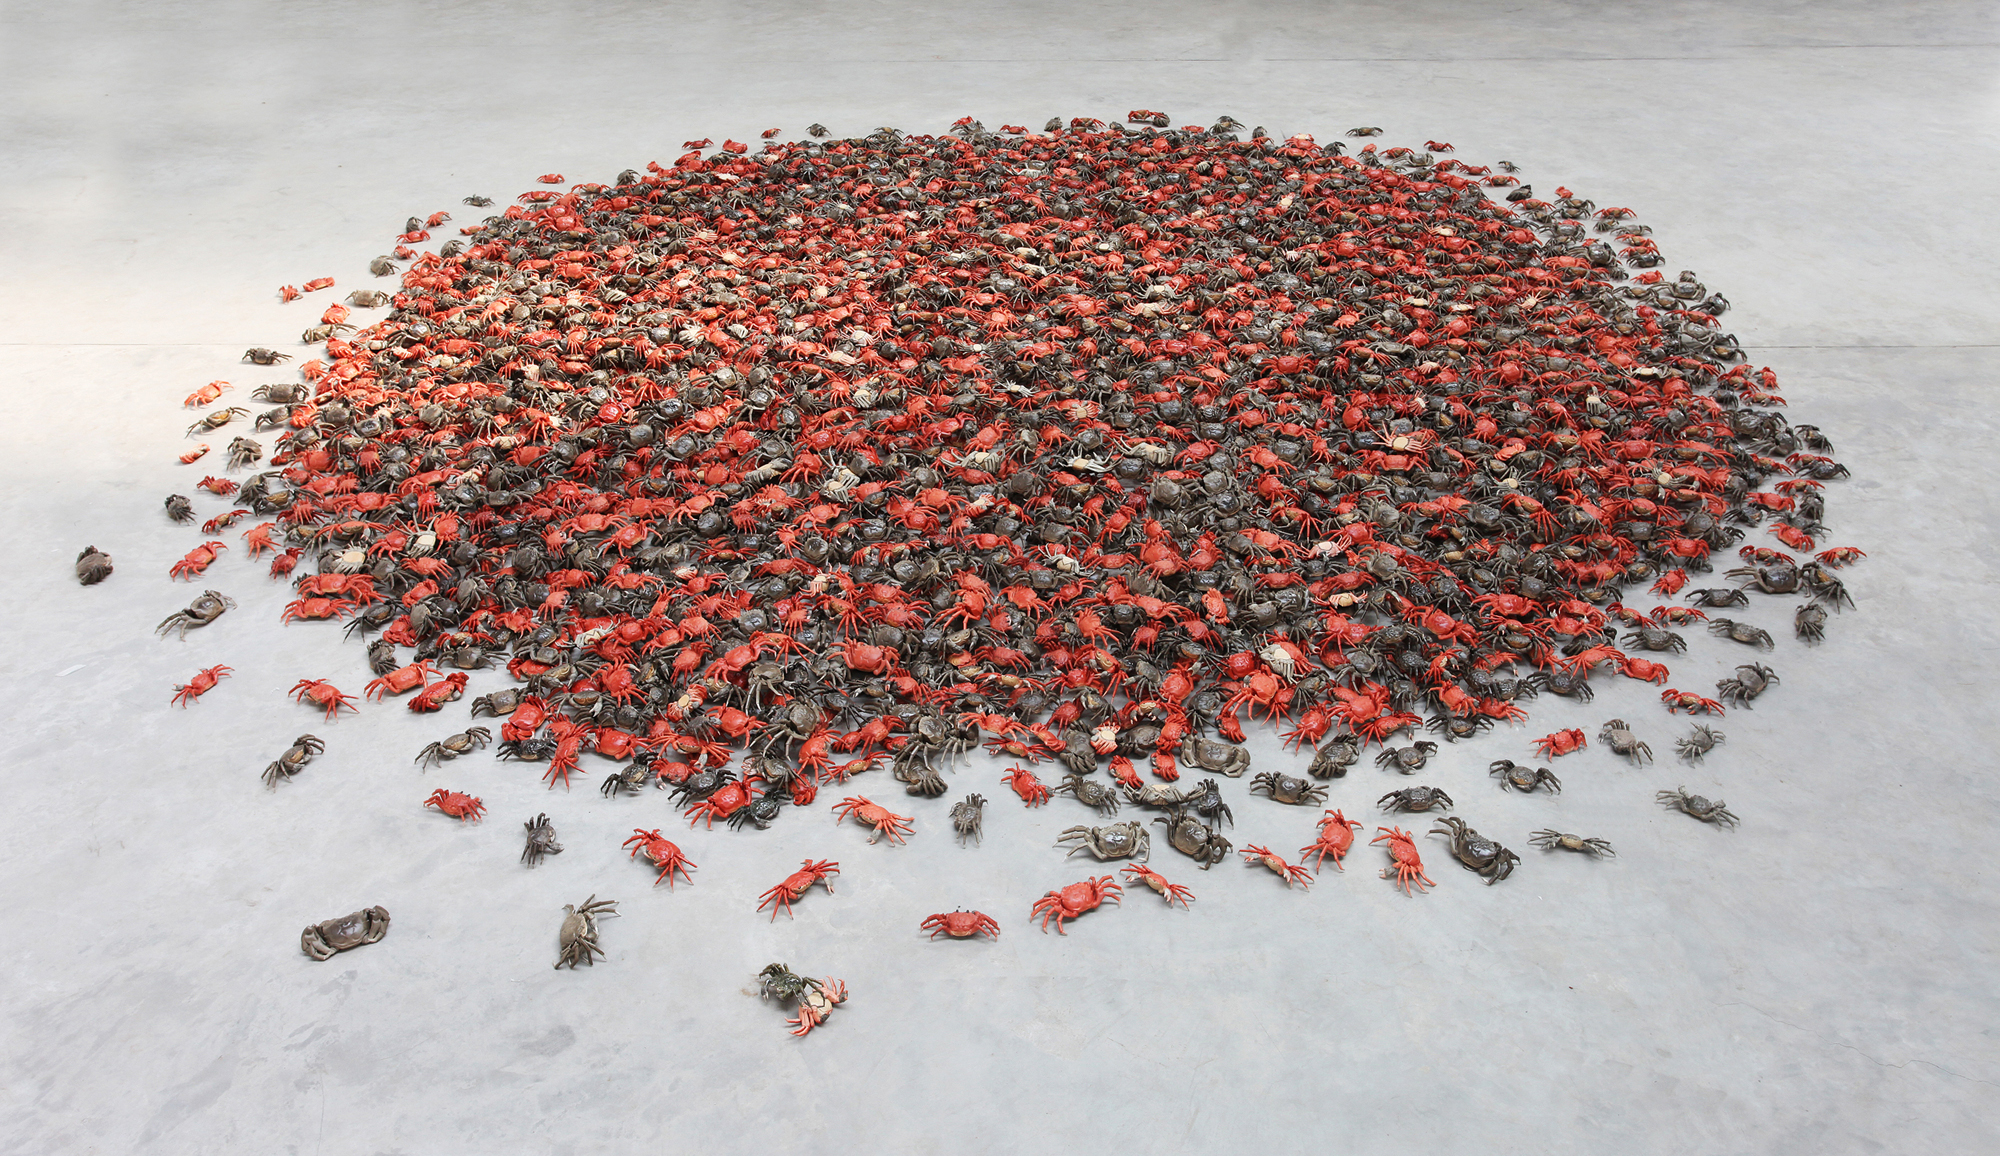 Ai Weiwei, He Xie, 2011. Porcelain crabs. 3,000 pieces, each 5 x 25 x 10cm. Courtesy of Ai Weiwei Studio. Image courtesy of Ai Weiwei Studio © Ai Weiwei